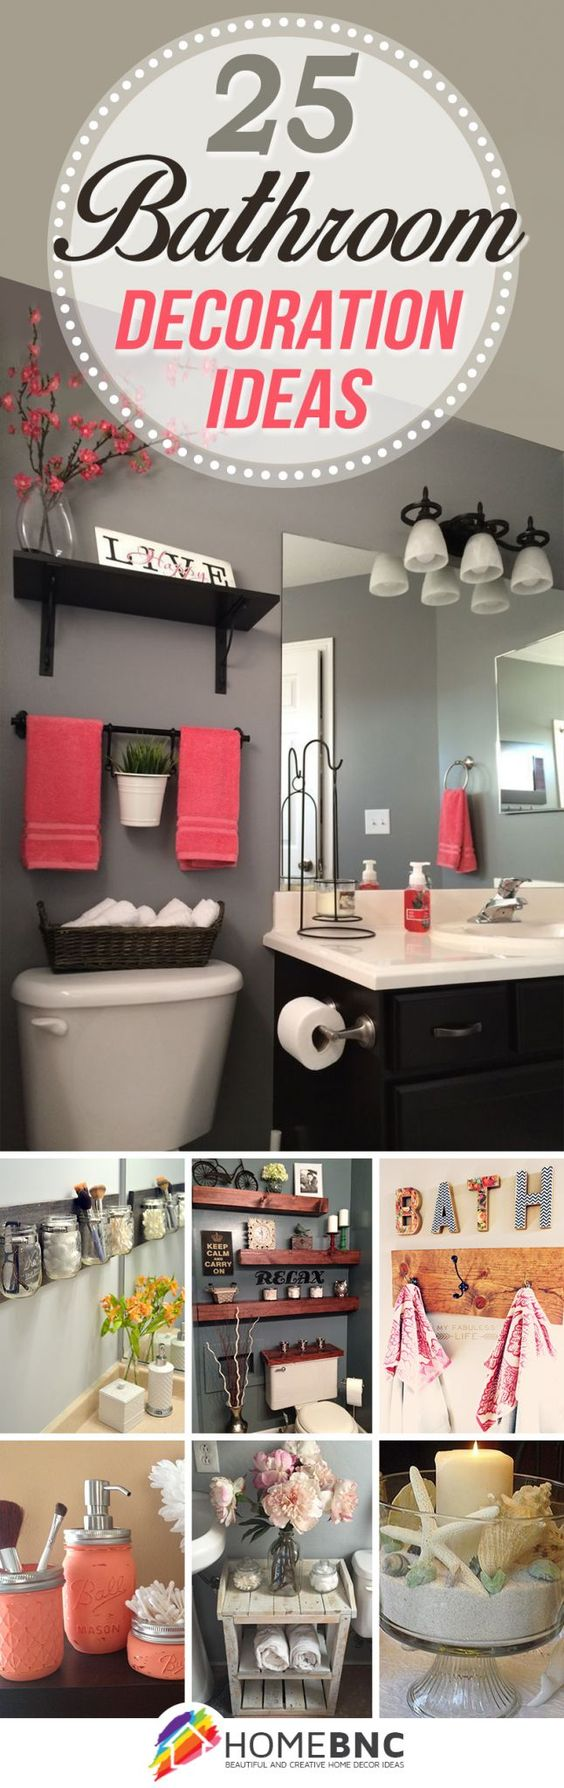 Tips Add Style To A Small Bathroom Bath Accessories Towels And Bright